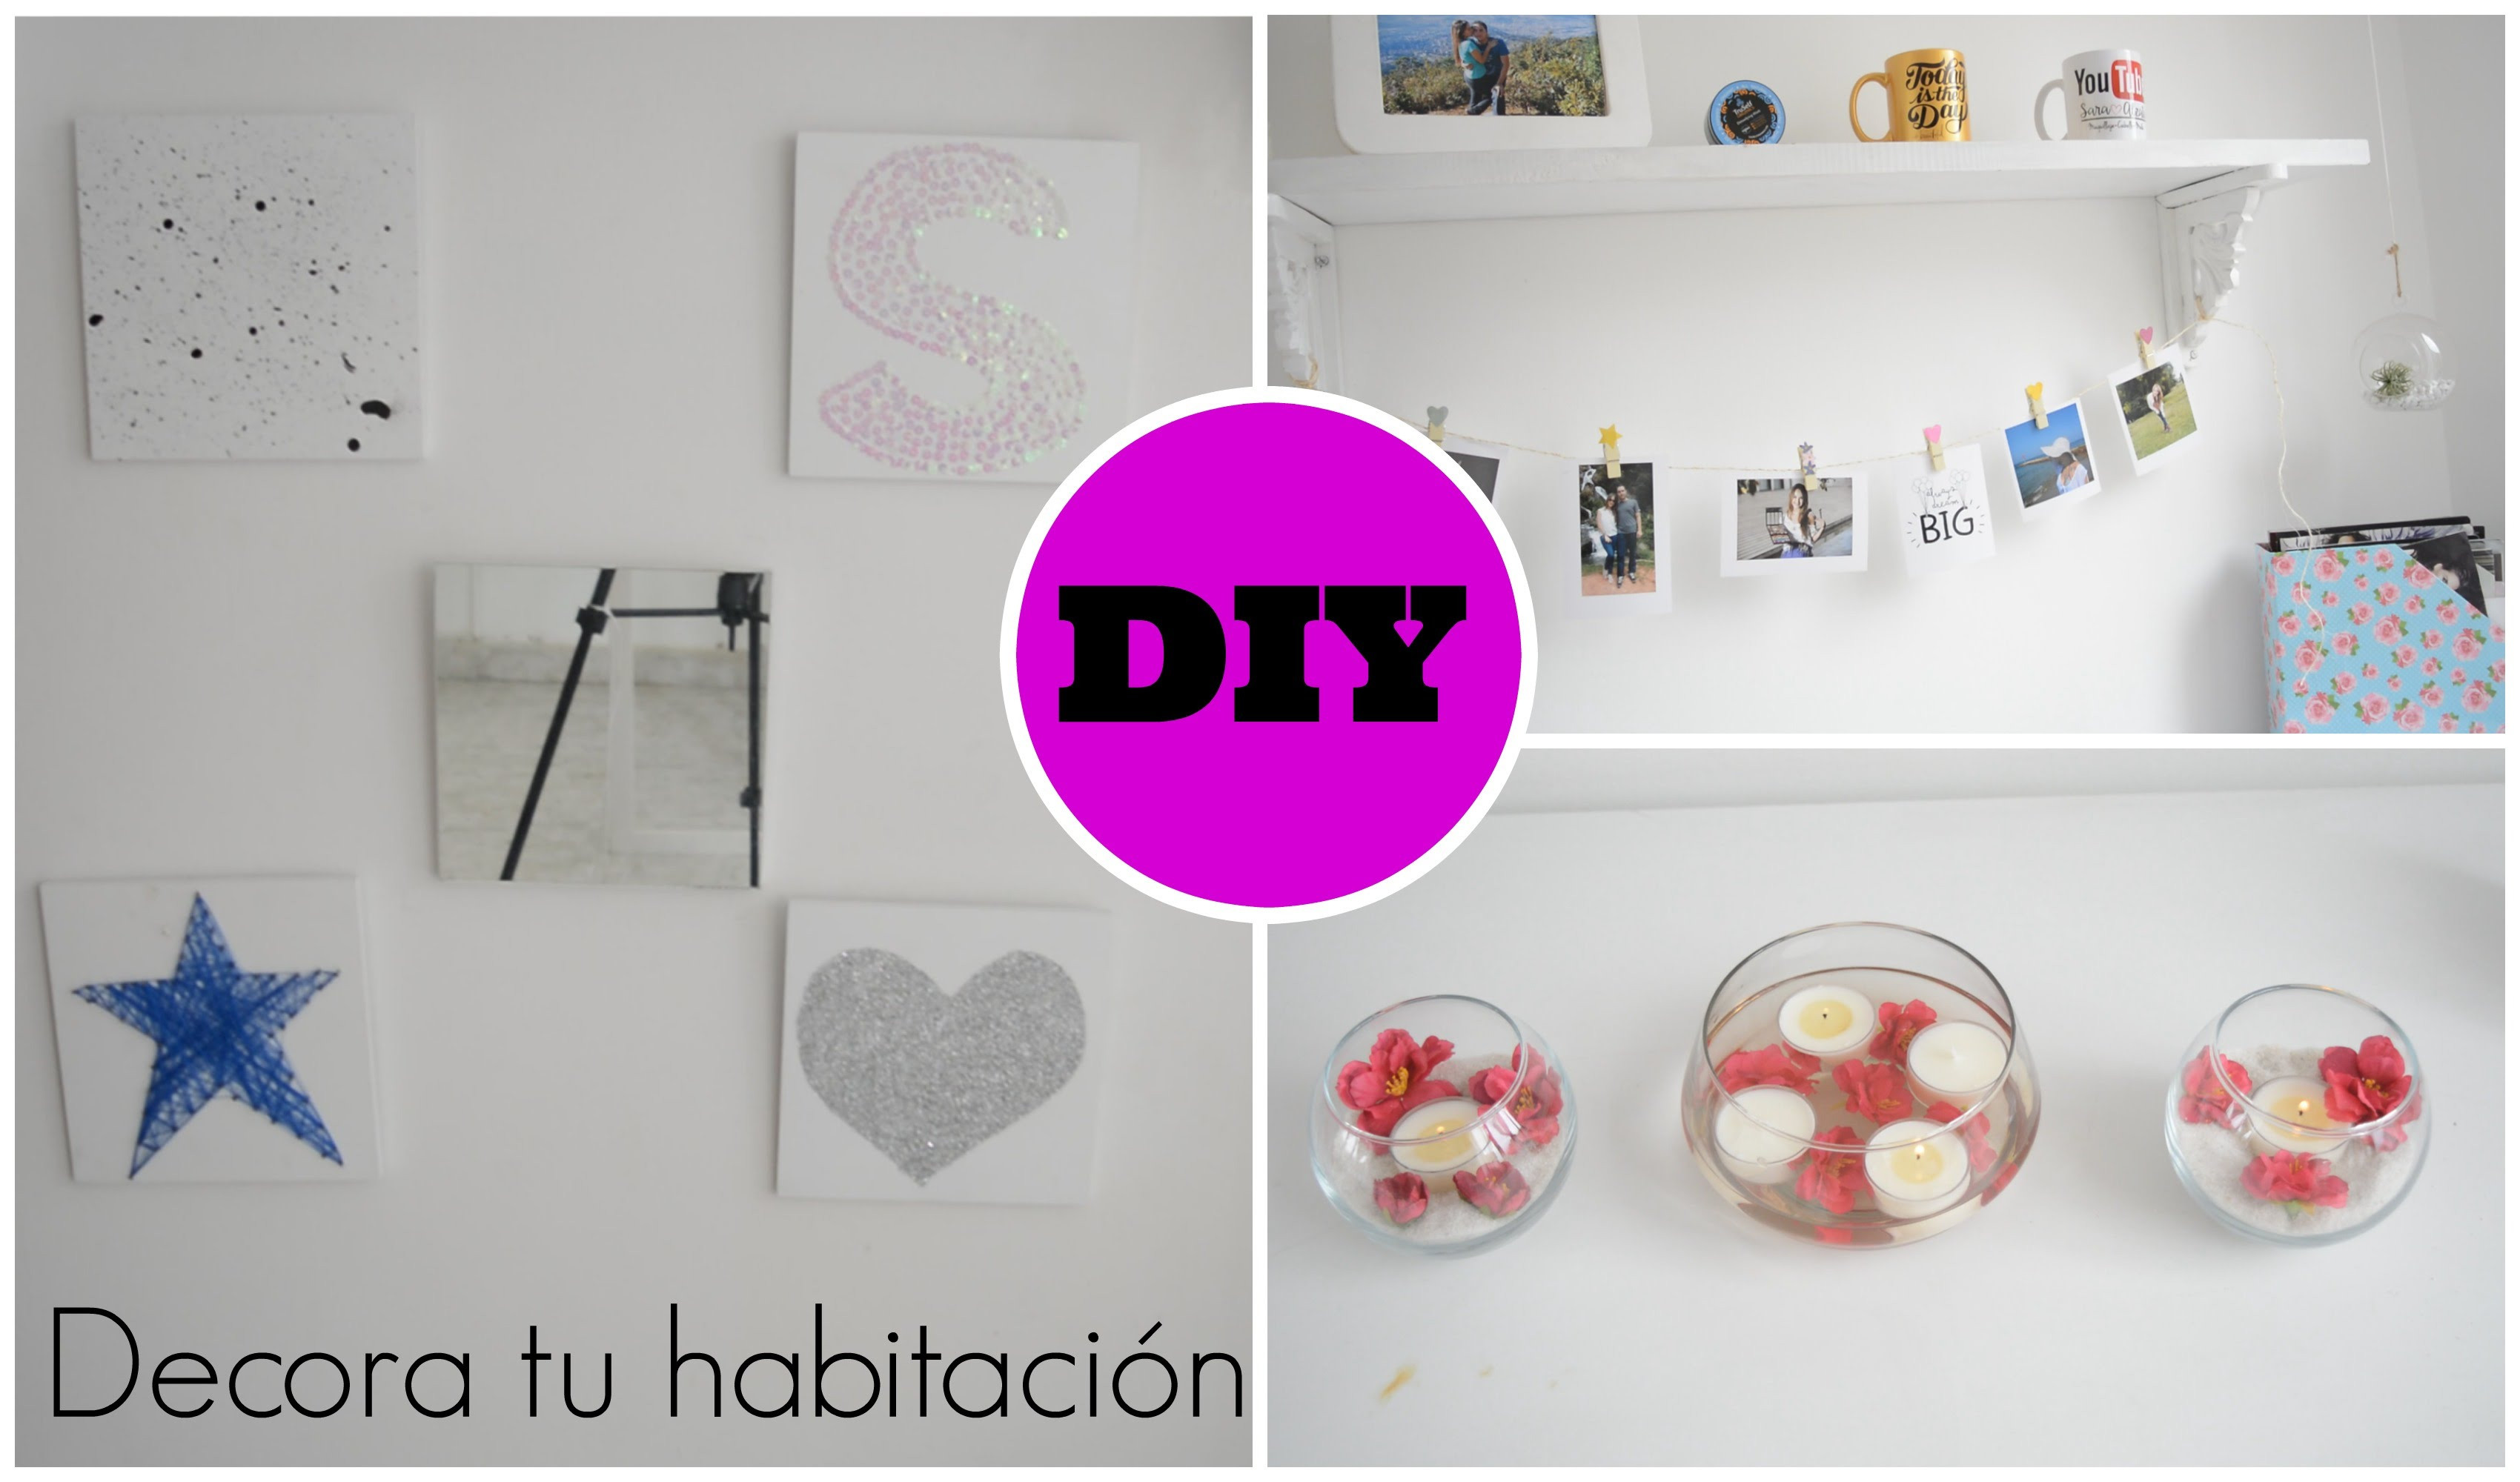 Ideas Para Decorar Tu Habitacion Perfecto Diy Ideas Para Decorar Tu Habitación Of 32  Adorable Ideas Para Decorar Tu Habitacion